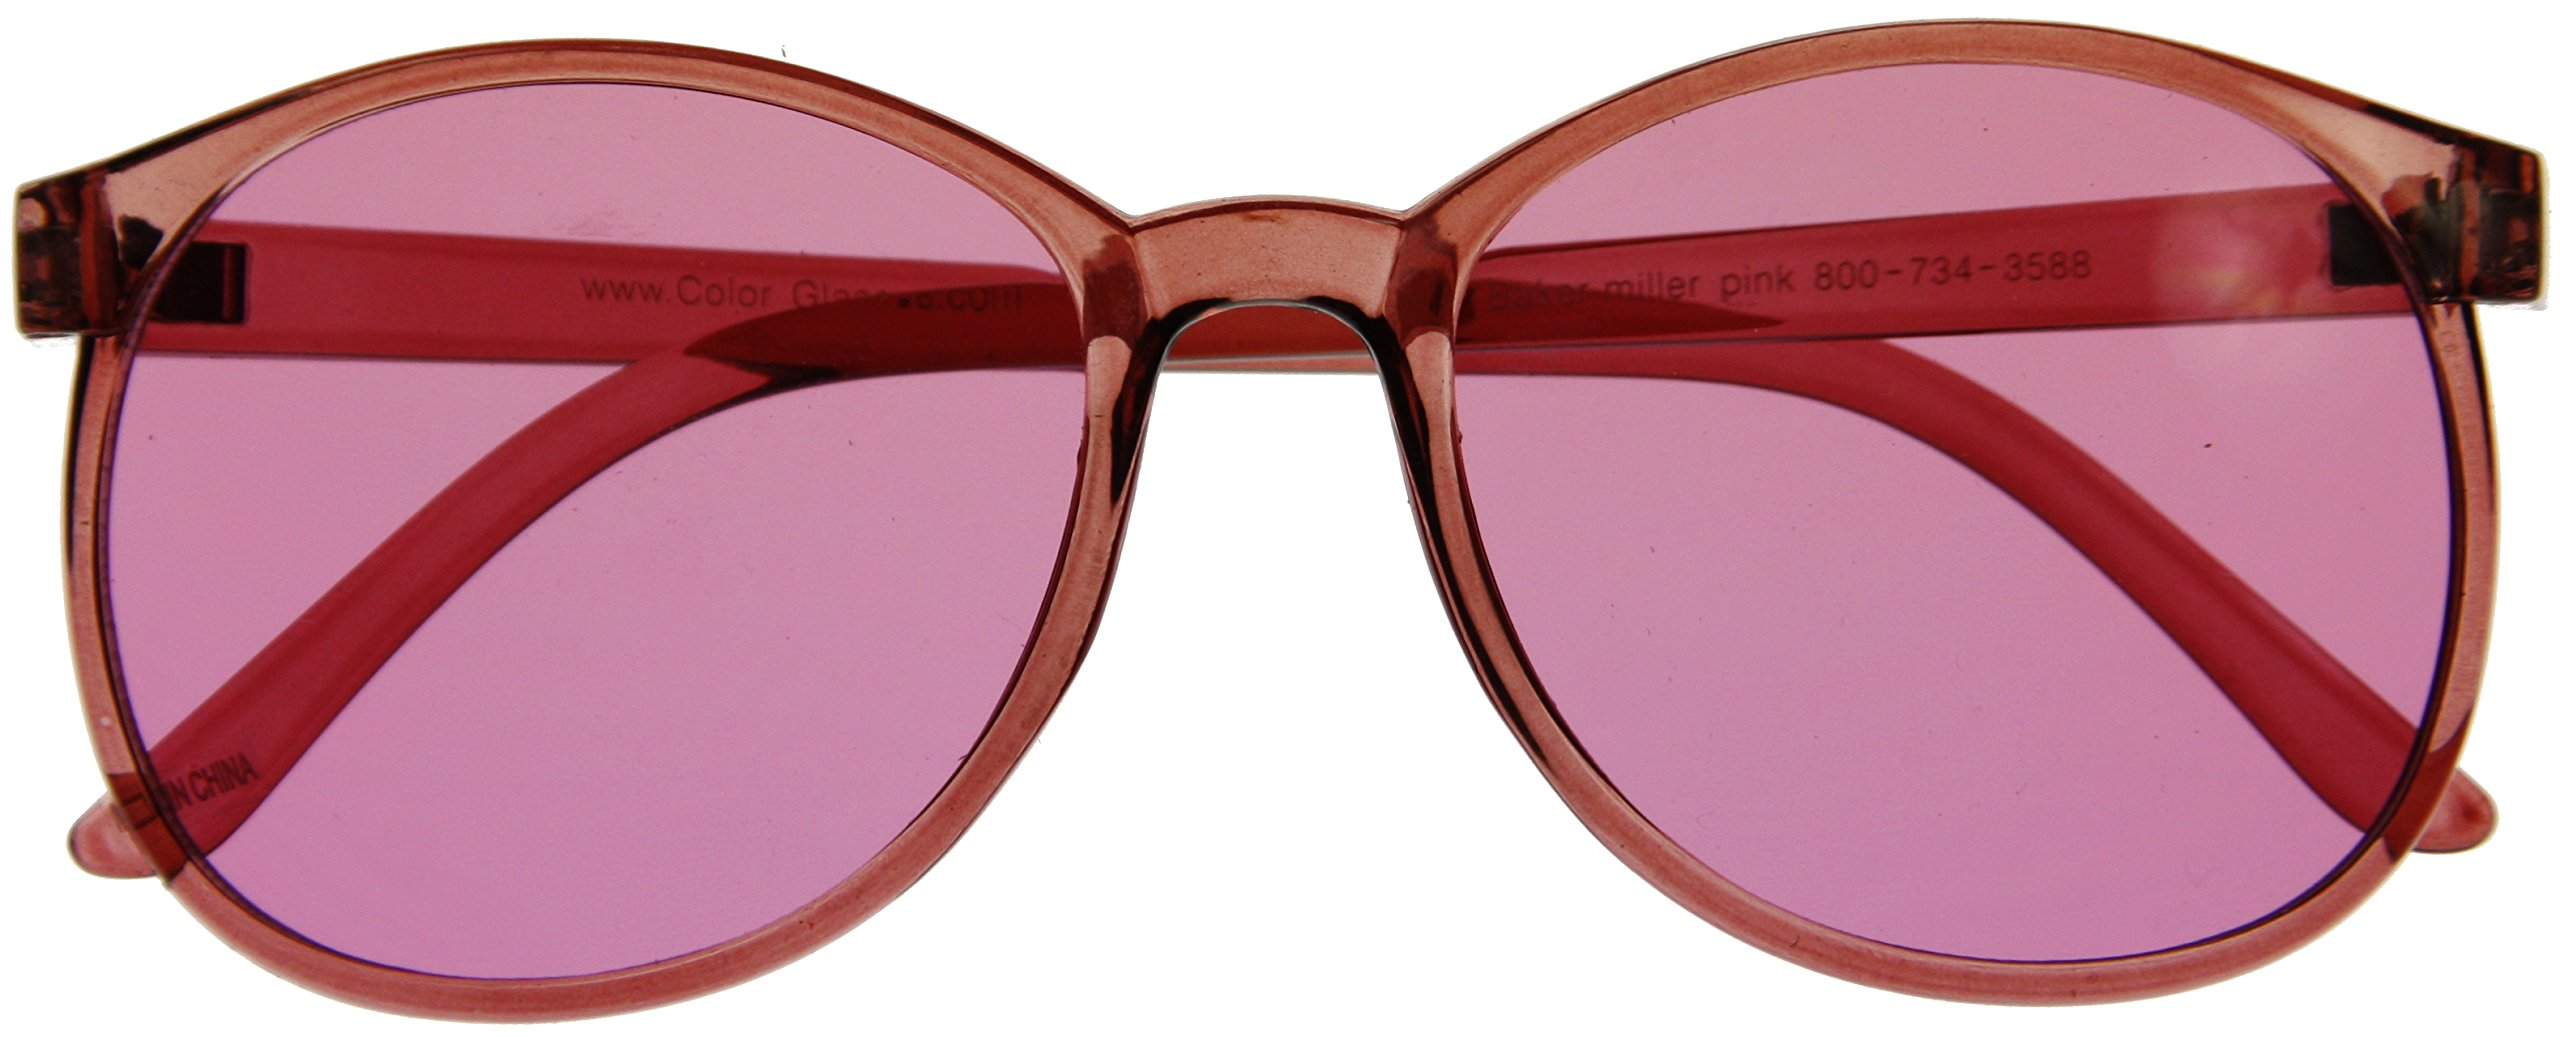 86f0c0f694 Amazon.com   10 Colors Available  Round Style Color Therapy Glasses -  Colored Lens Sunglasses (Pink)  Health   Personal Care